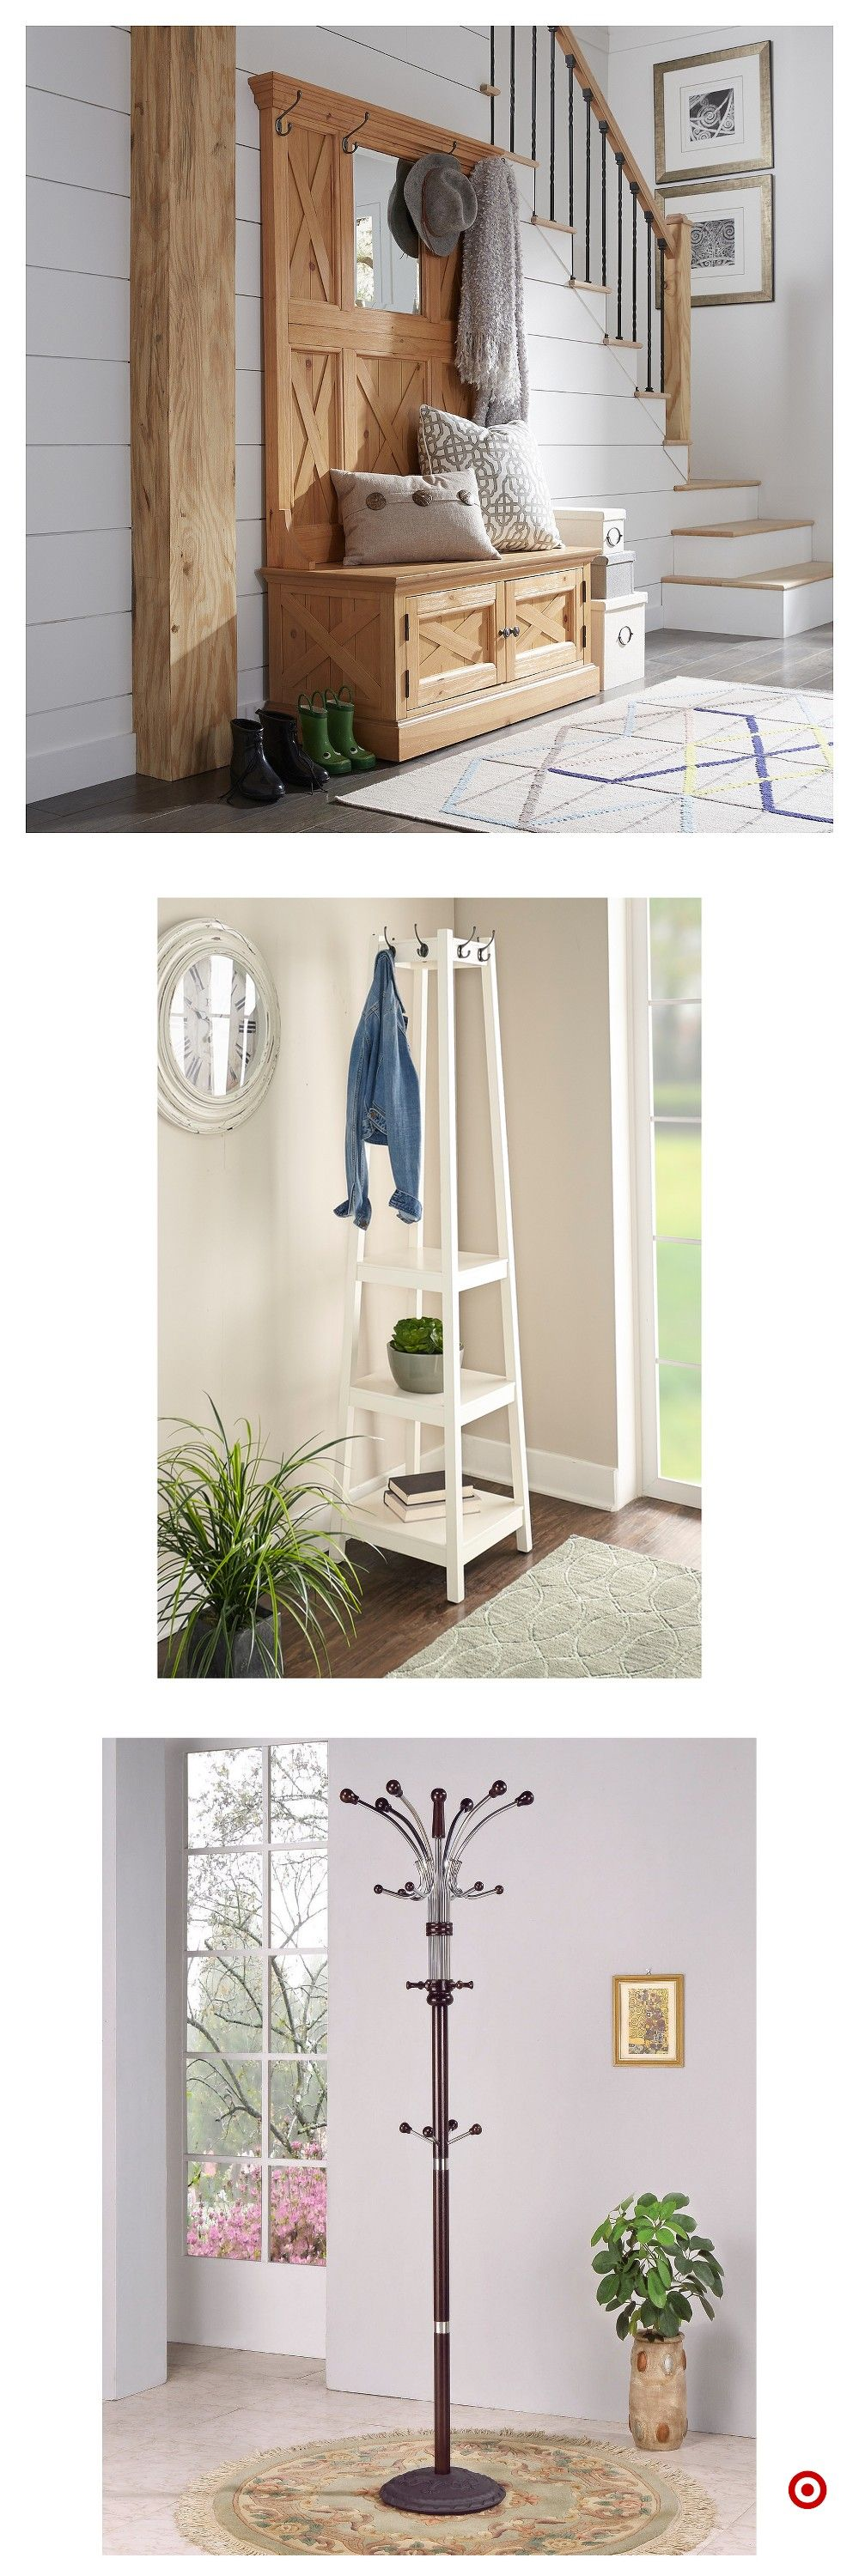 Shop Tar for freestanding coat rack you will love at great low